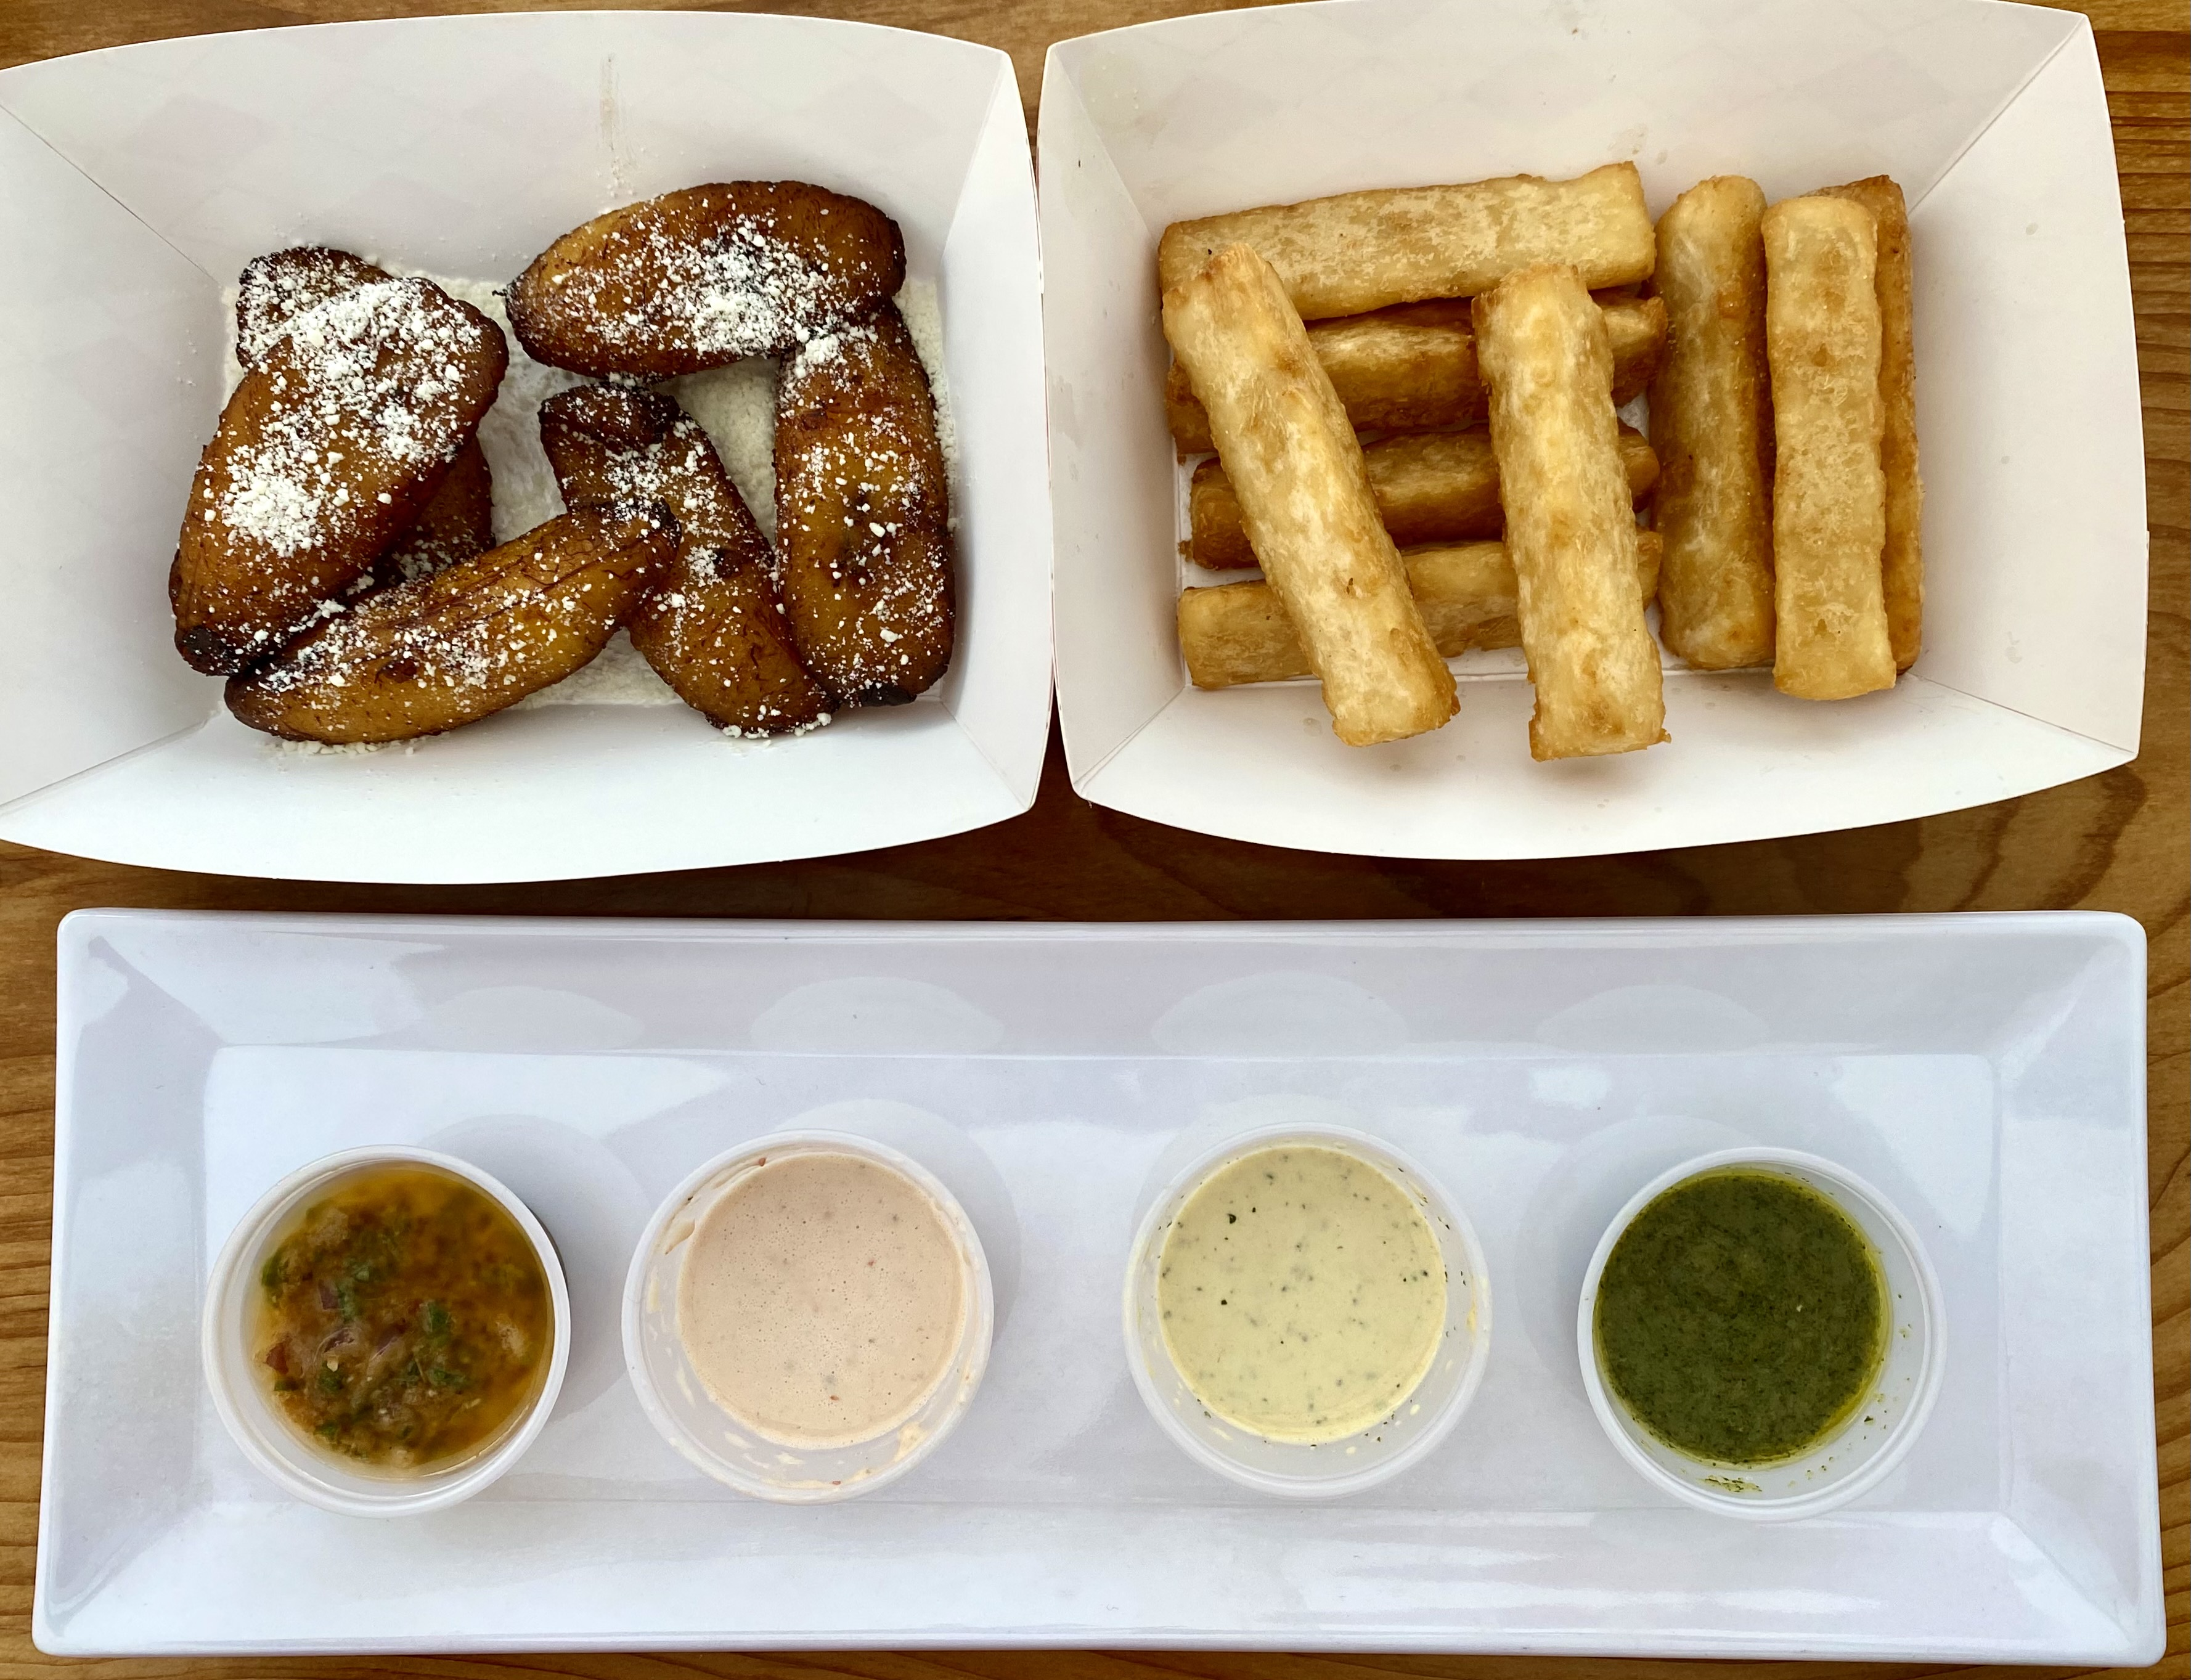 Fried Plantains and Yuca Fries with dipping sauces{ } (Image: Karen Rose / Seattle Refined)